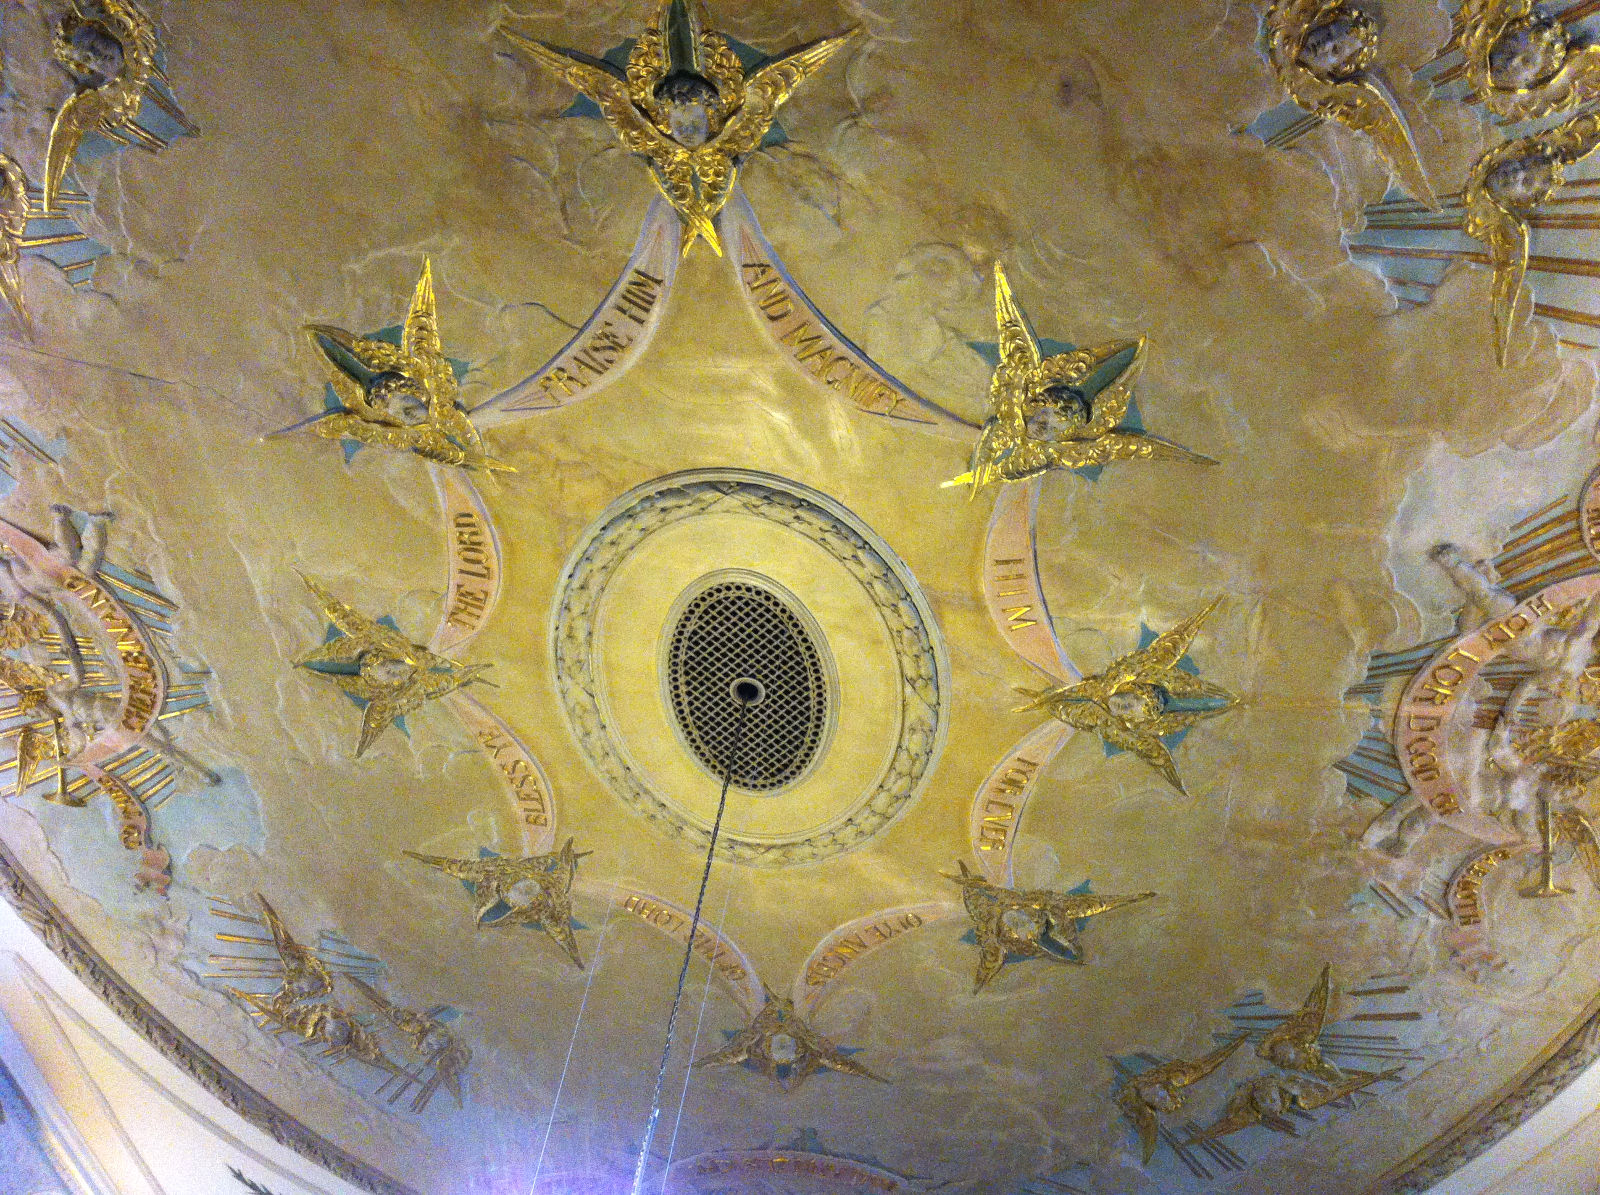 The beautiful ceiling of the Church of St George the Martyr